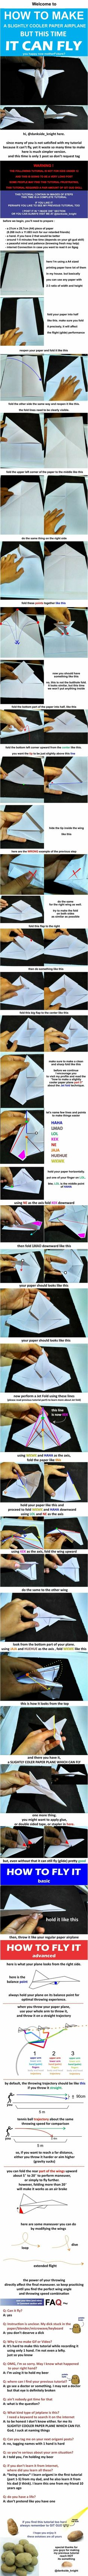 55 Best Planes Images Paper Plane Origami Airplane How To Fold An Naboo Starfighter And Other Starships From Star